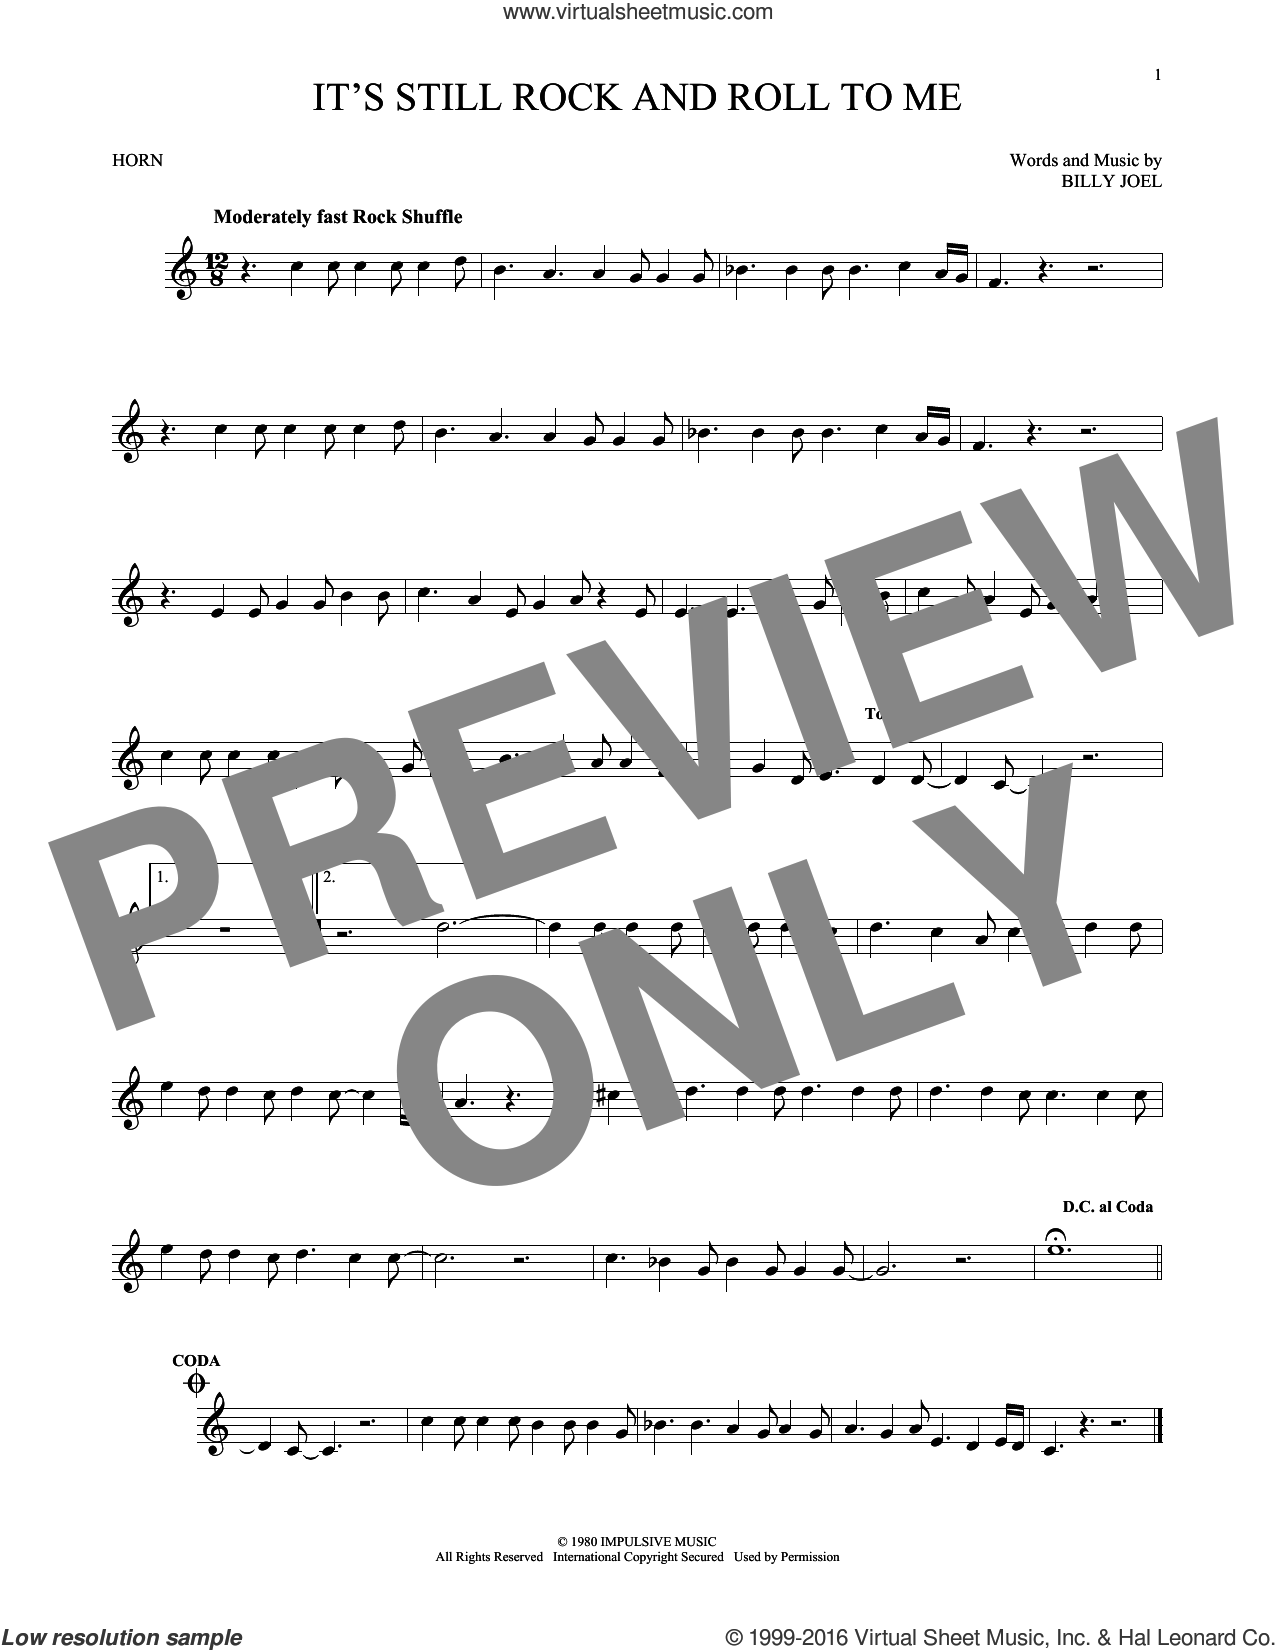 It's Still Rock And Roll To Me sheet music for horn solo by Billy Joel, intermediate skill level